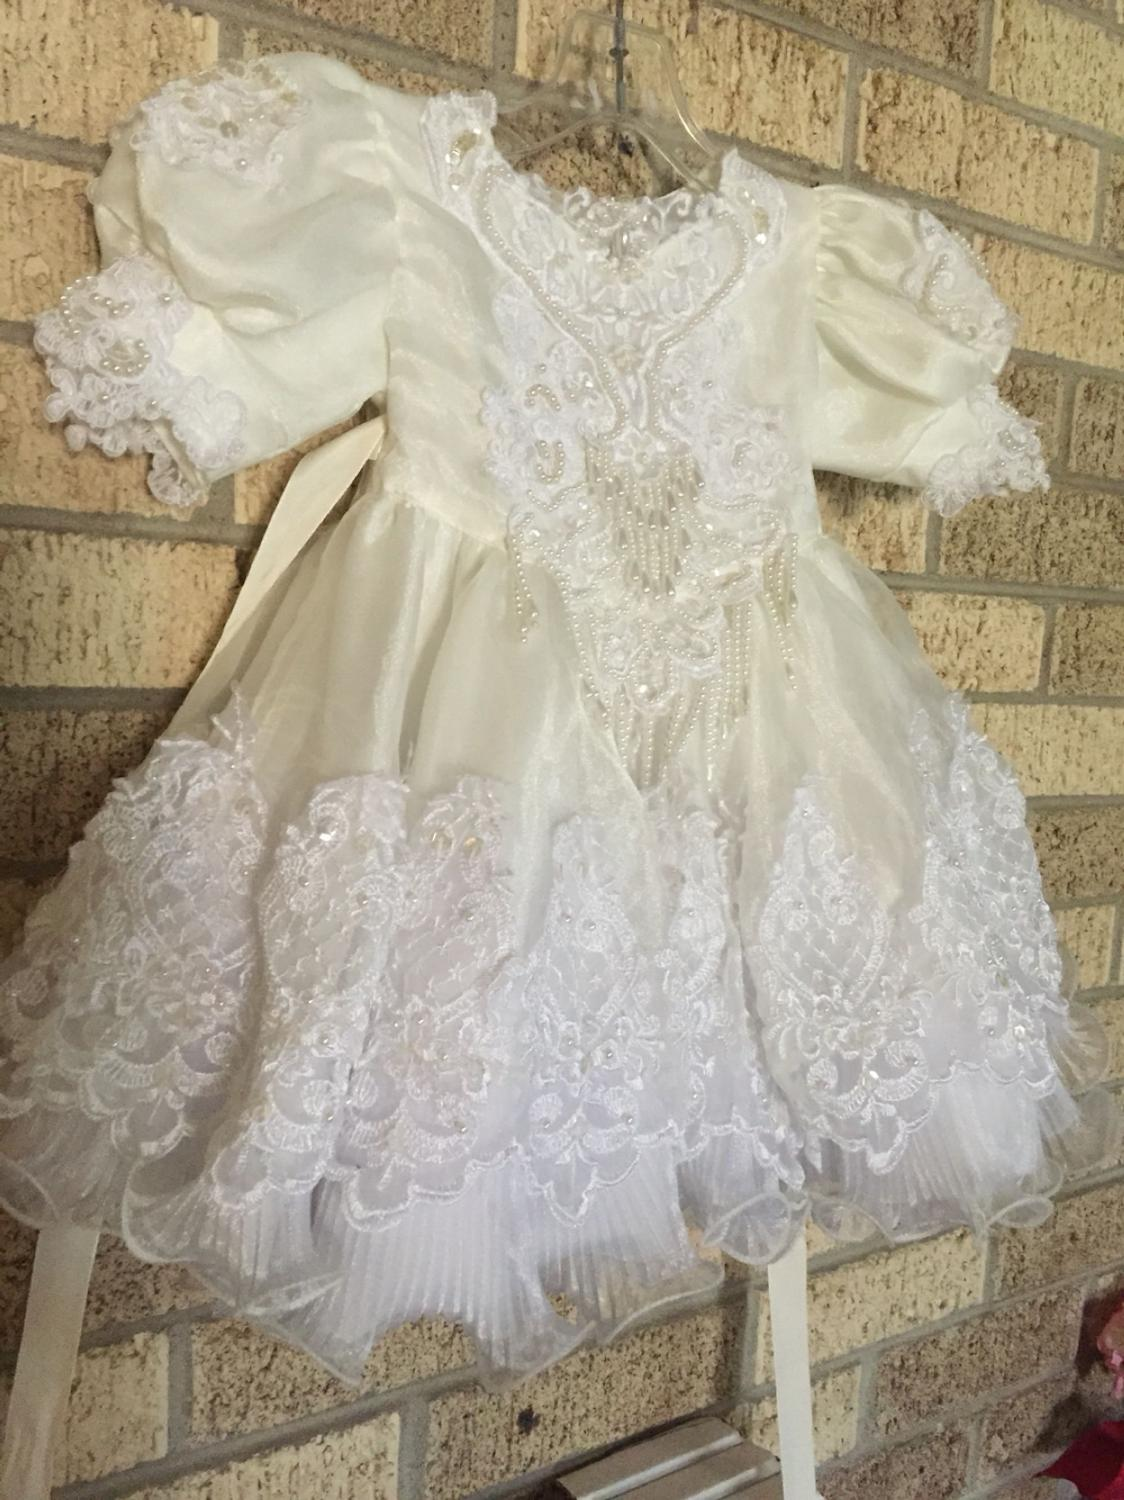 Best precious pageant wedding dress 12 month swap for 12 month dresses for wedding